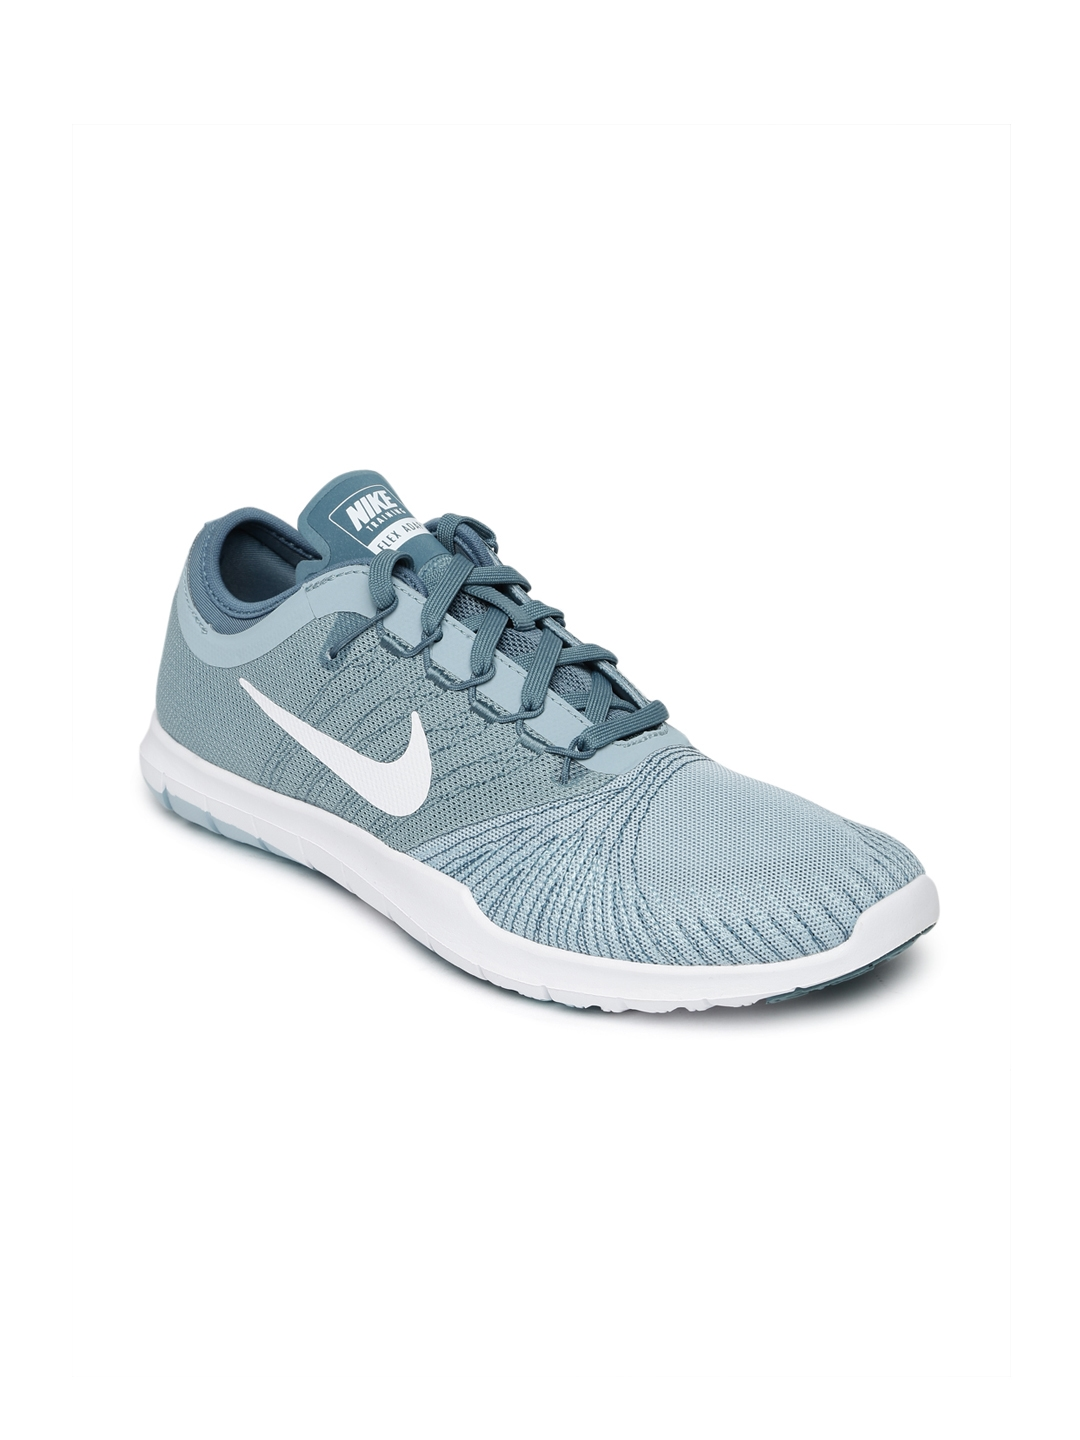 d9cdd9a608dd Buy Nike Women Blue FLEX ADAPT TR Training Shoes - Sports Shoes for ...